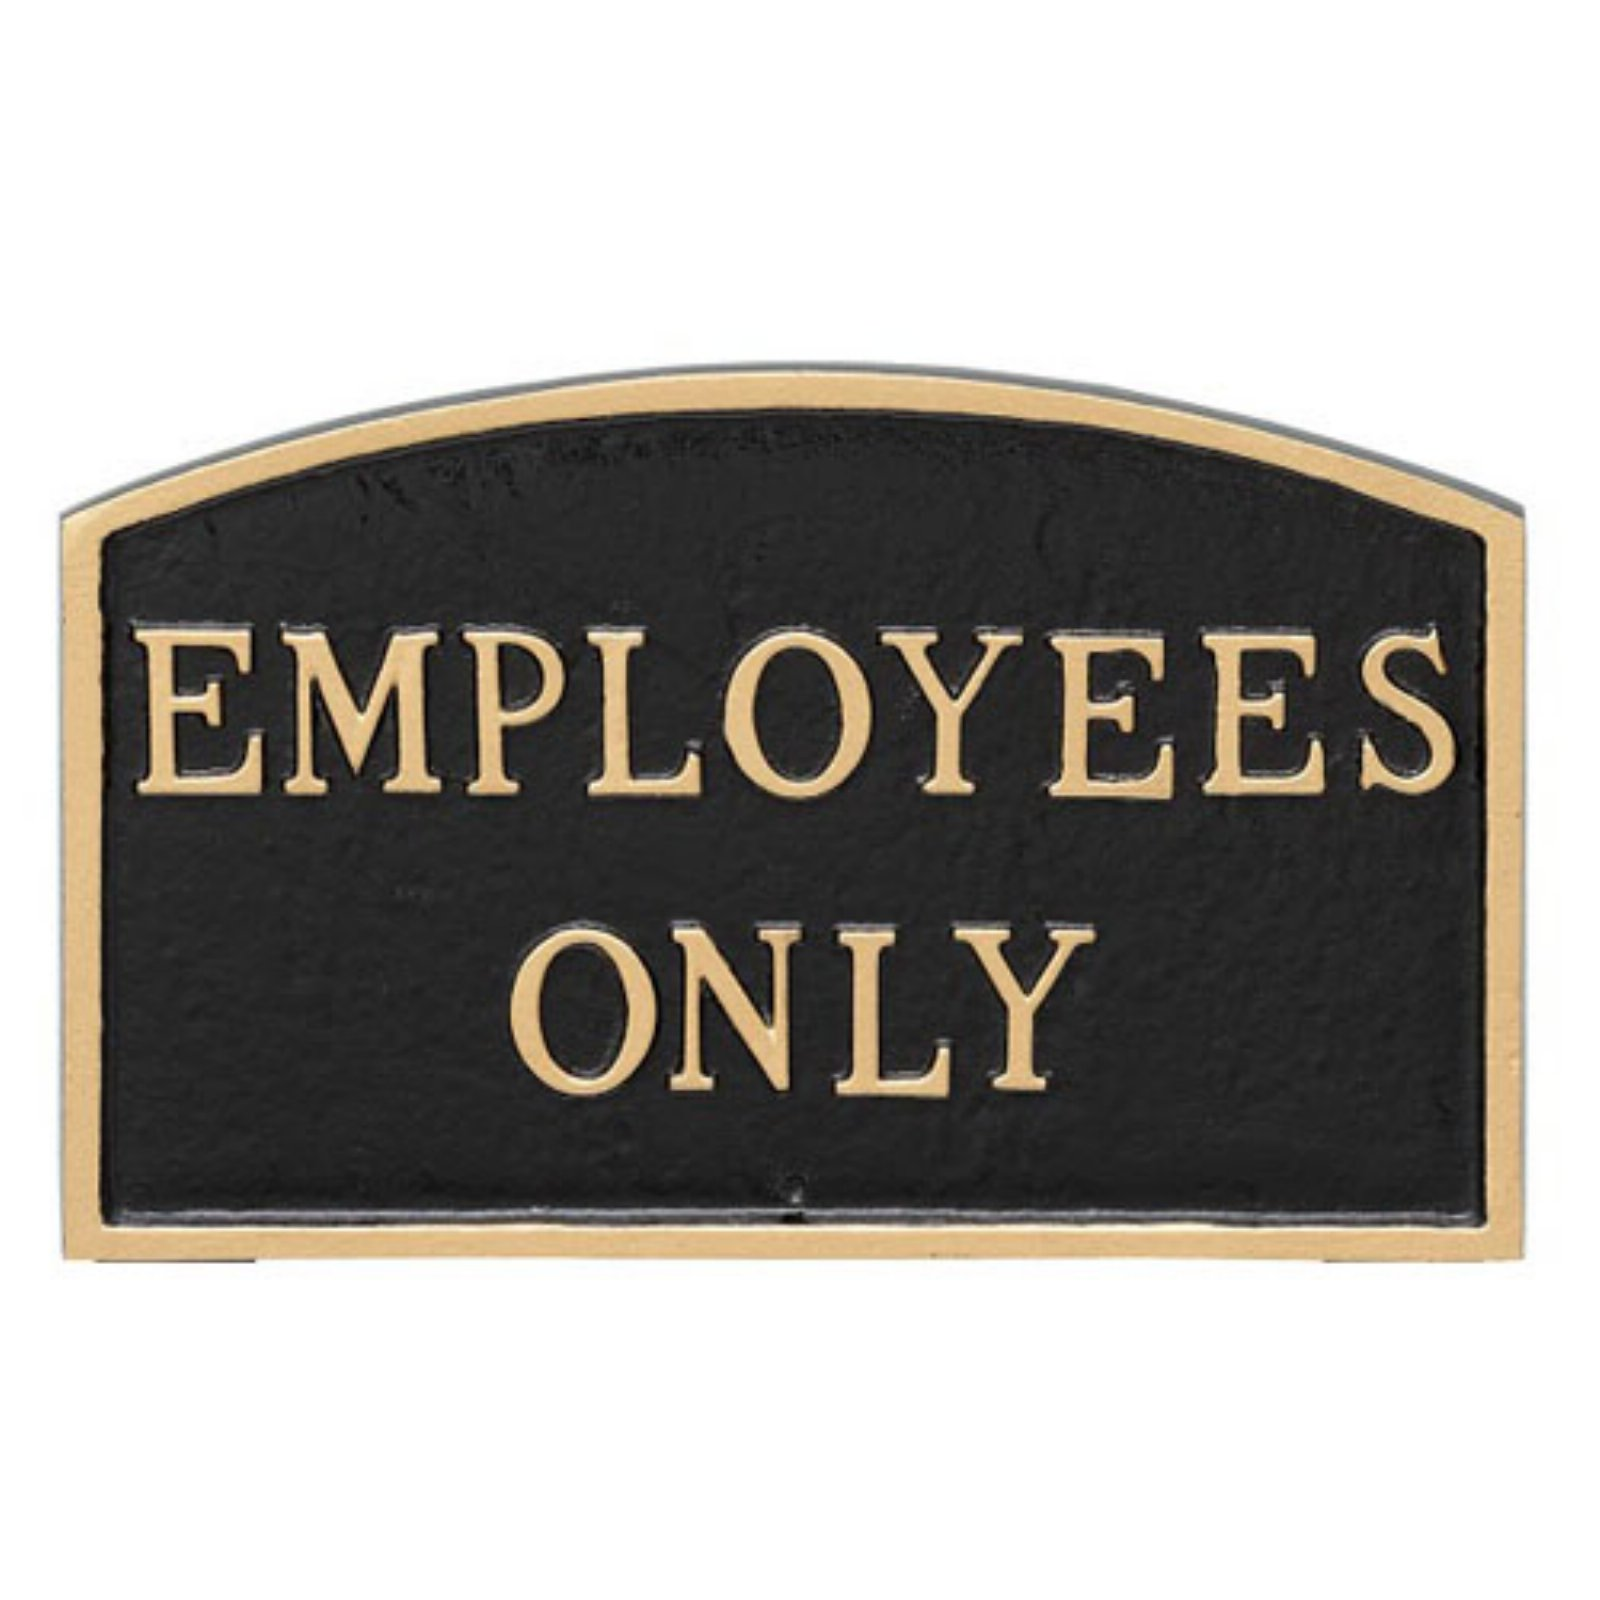 Montague Metal Products Employees Only Arched Wall Plaque